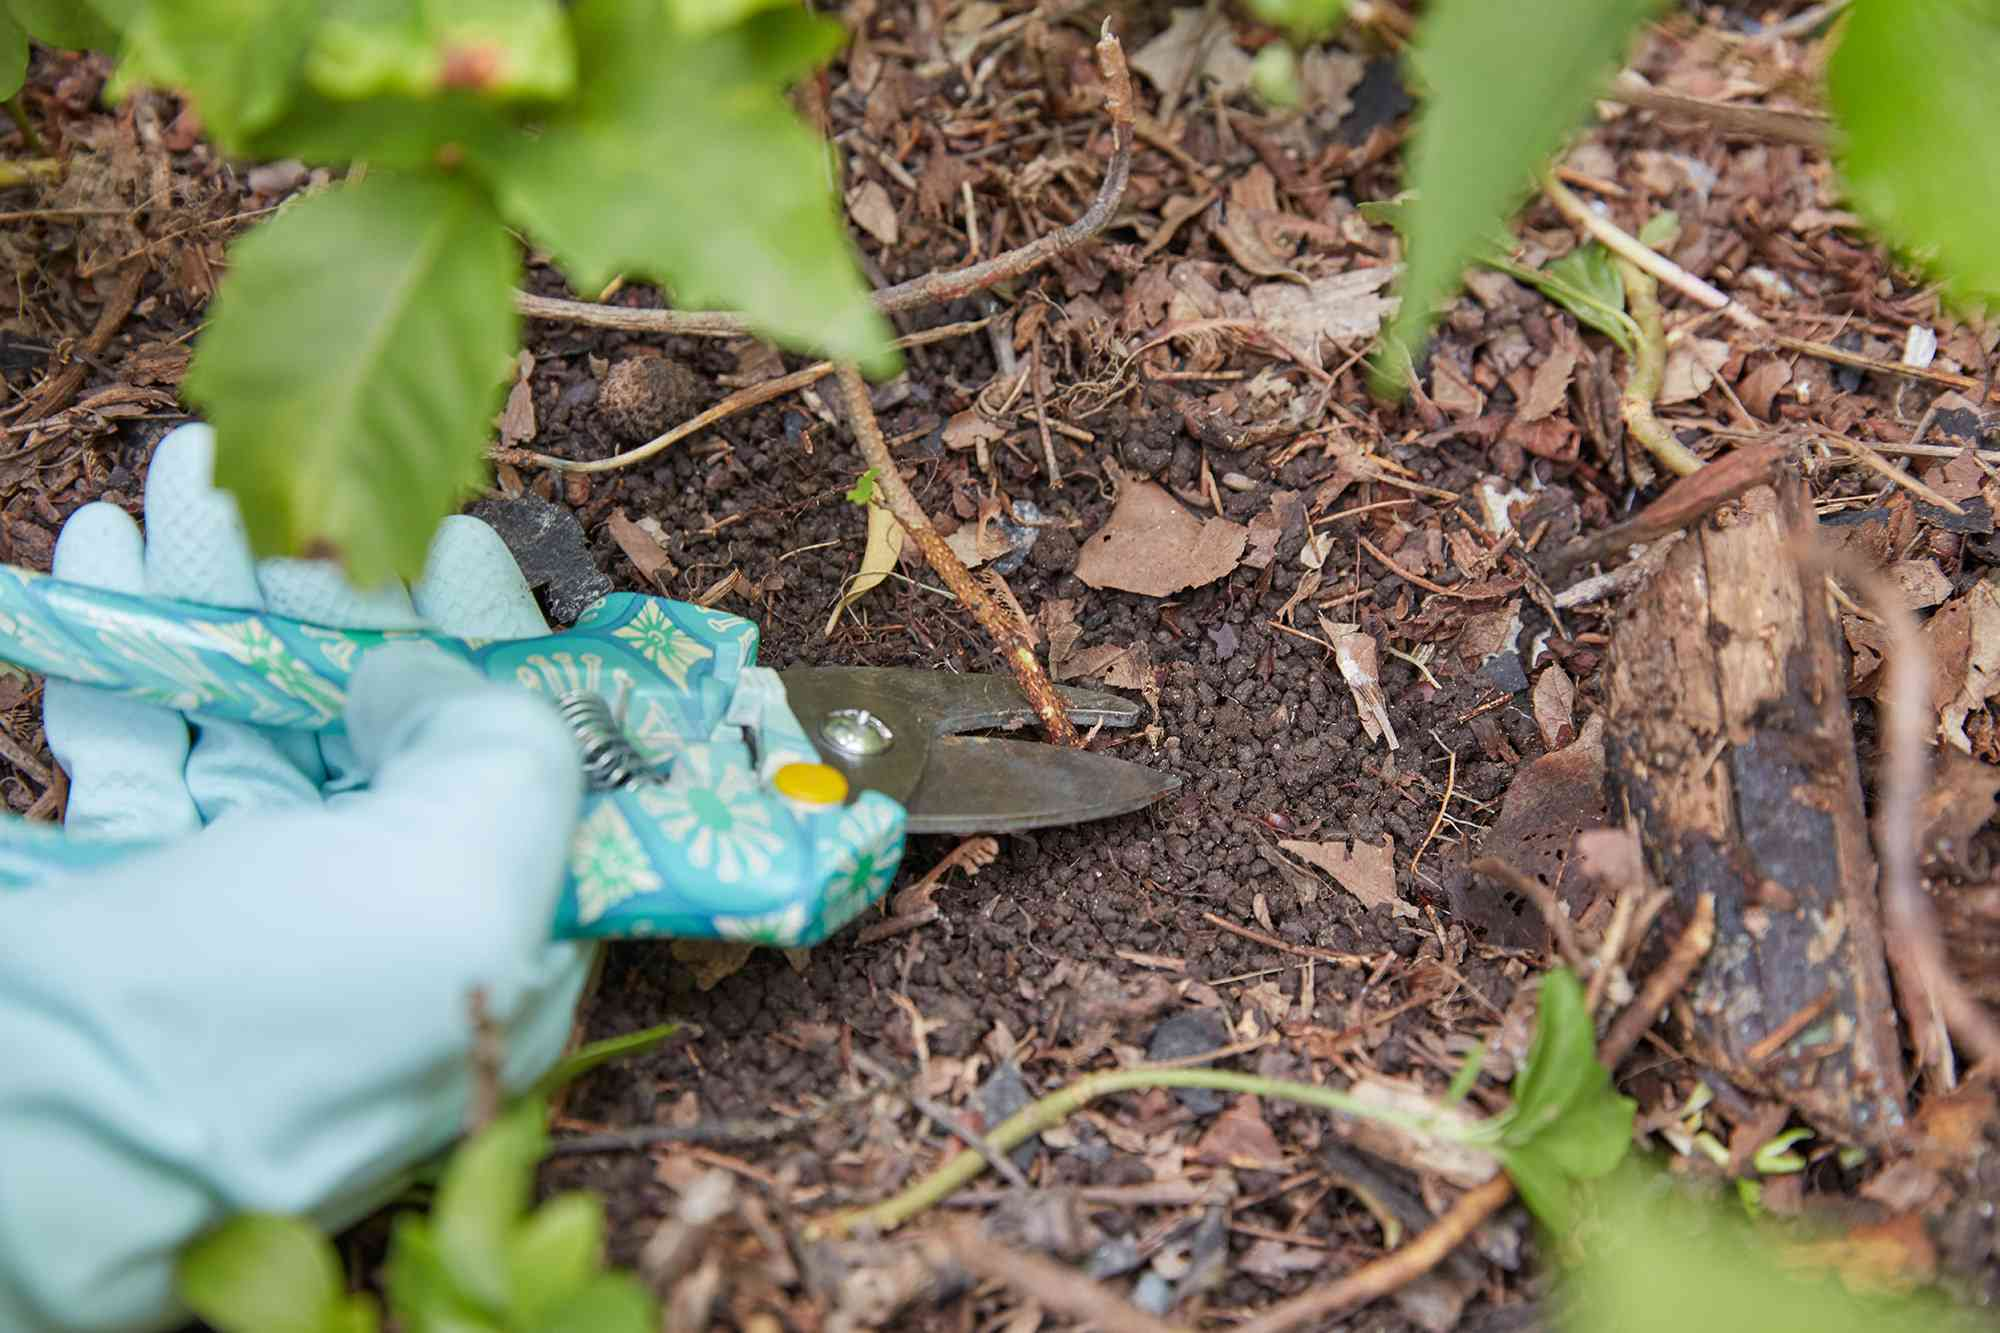 Poison ivy plant stem cut off at ground level with handheld pruners and rubber gloves